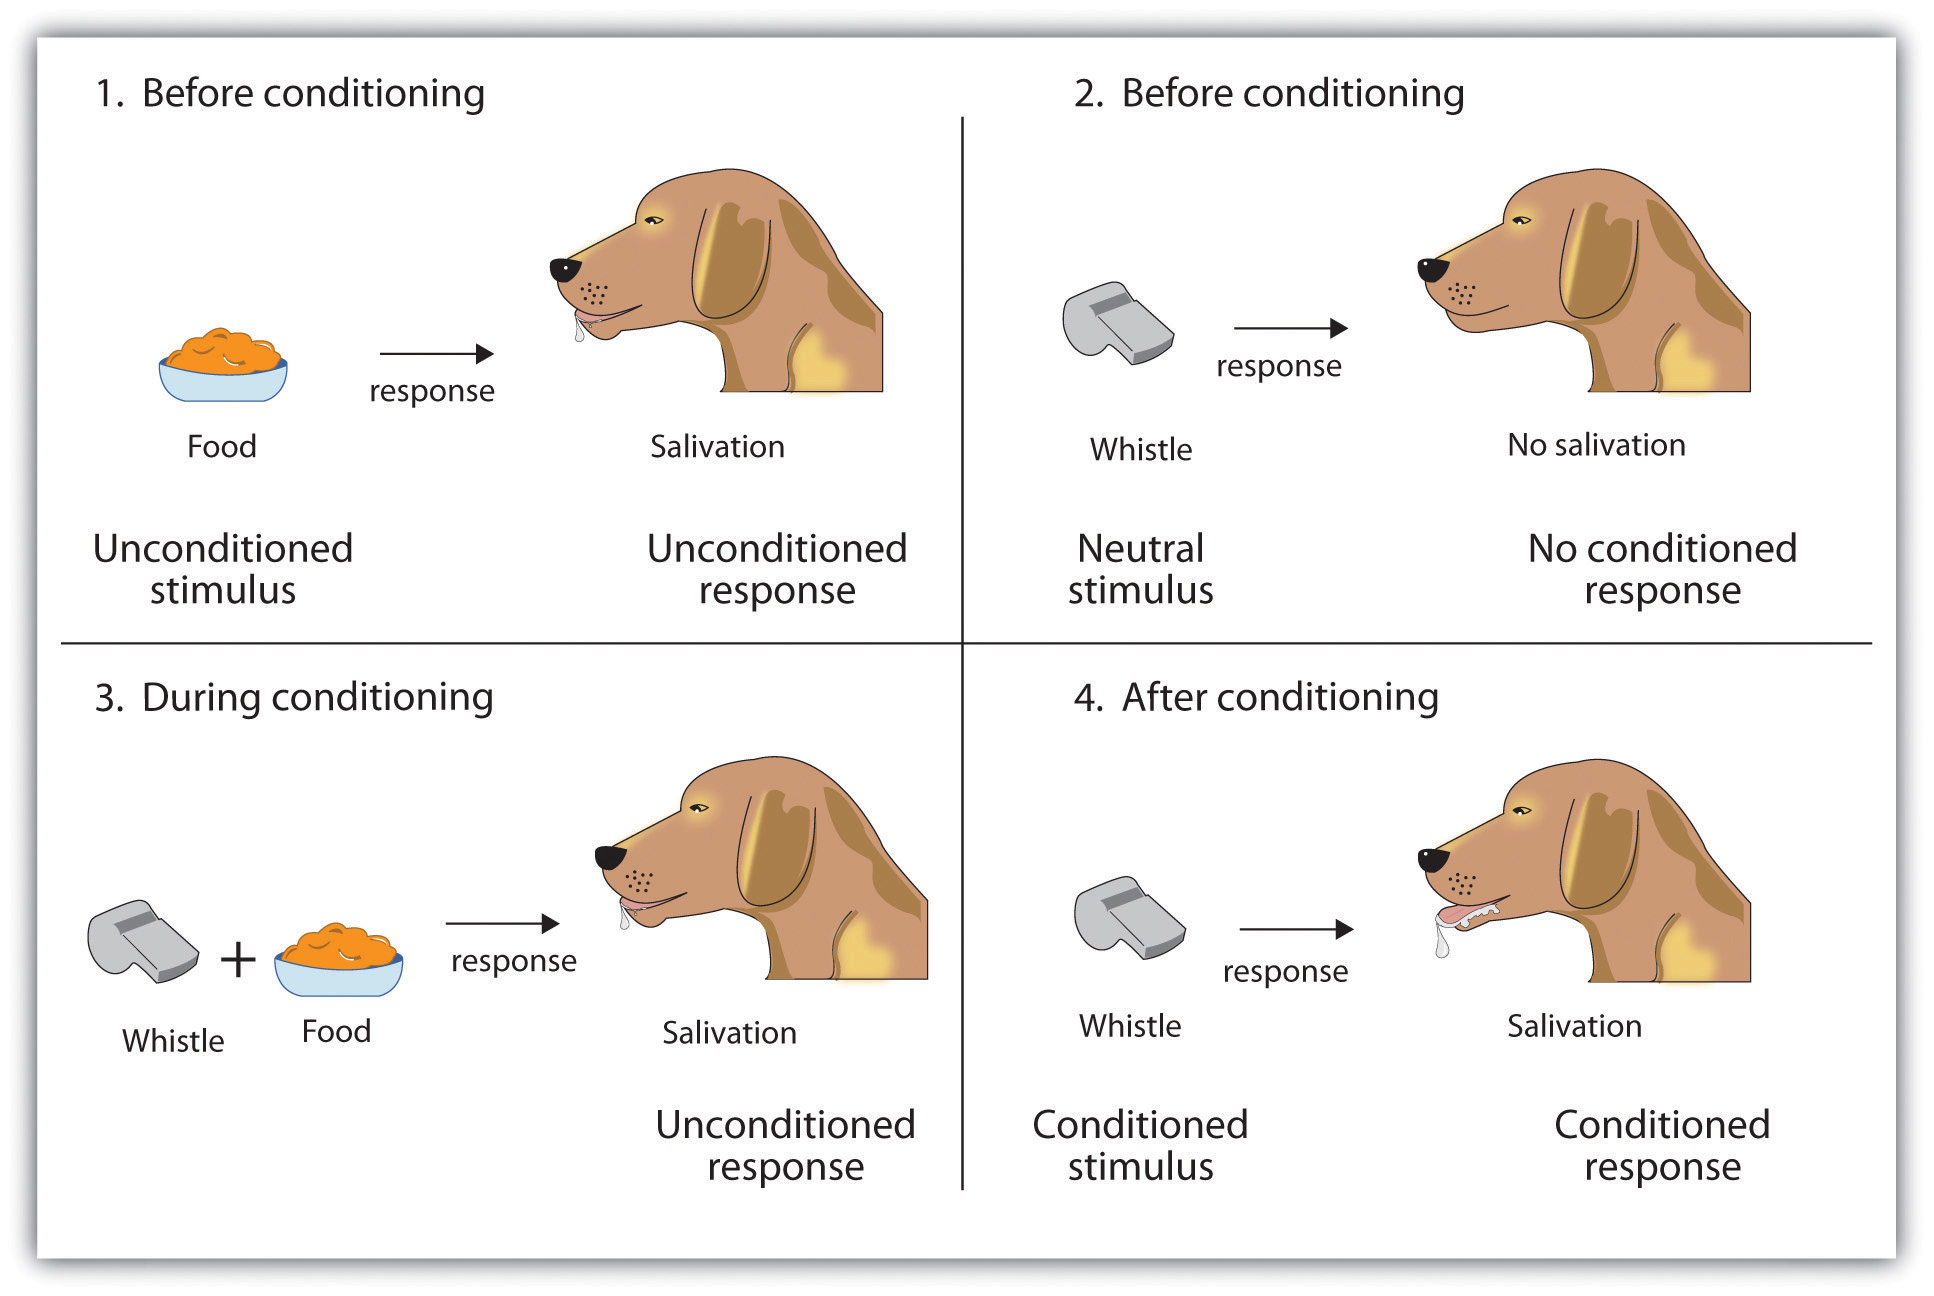 Top left: Before conditioning, the unconditioned stimulus (US) naturally produces the unconditioned response (UR). Top right: Before conditioning, the neutral stimulus (the whistle) does not produce the salivation response. Bottom left: The unconditioned stimulus (US), in this case the food, is repeatedly presented immediately after the neutral stimulus. Bottom right: After learning, the neutral stimulus (now known as the conditioned stimulus or CS), is sufficient to produce the conditioned responses (CR).